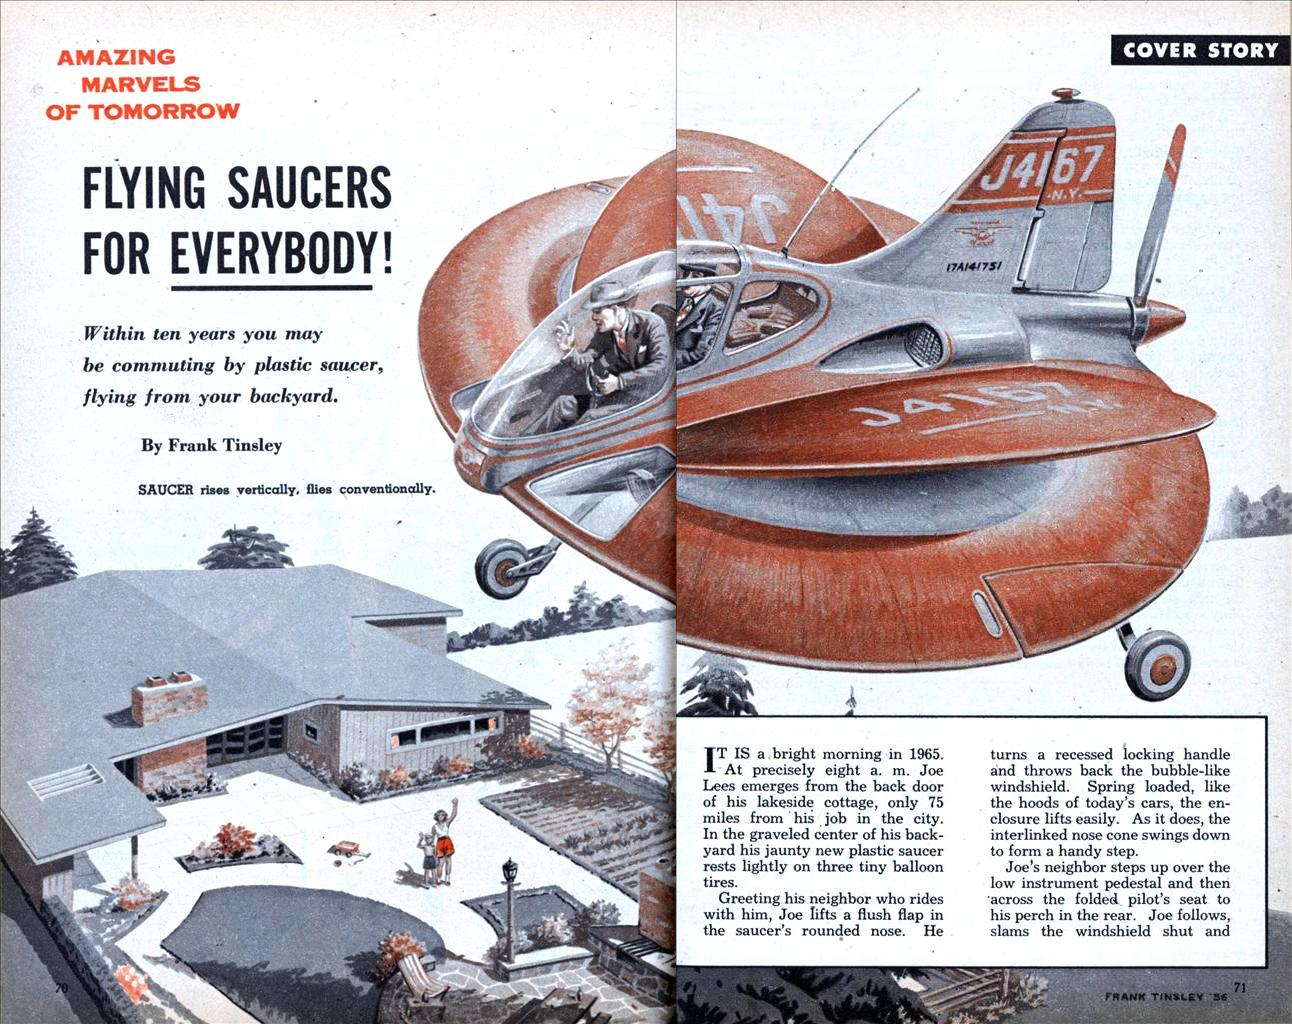 Flying Saucers karya Frank Tinsley